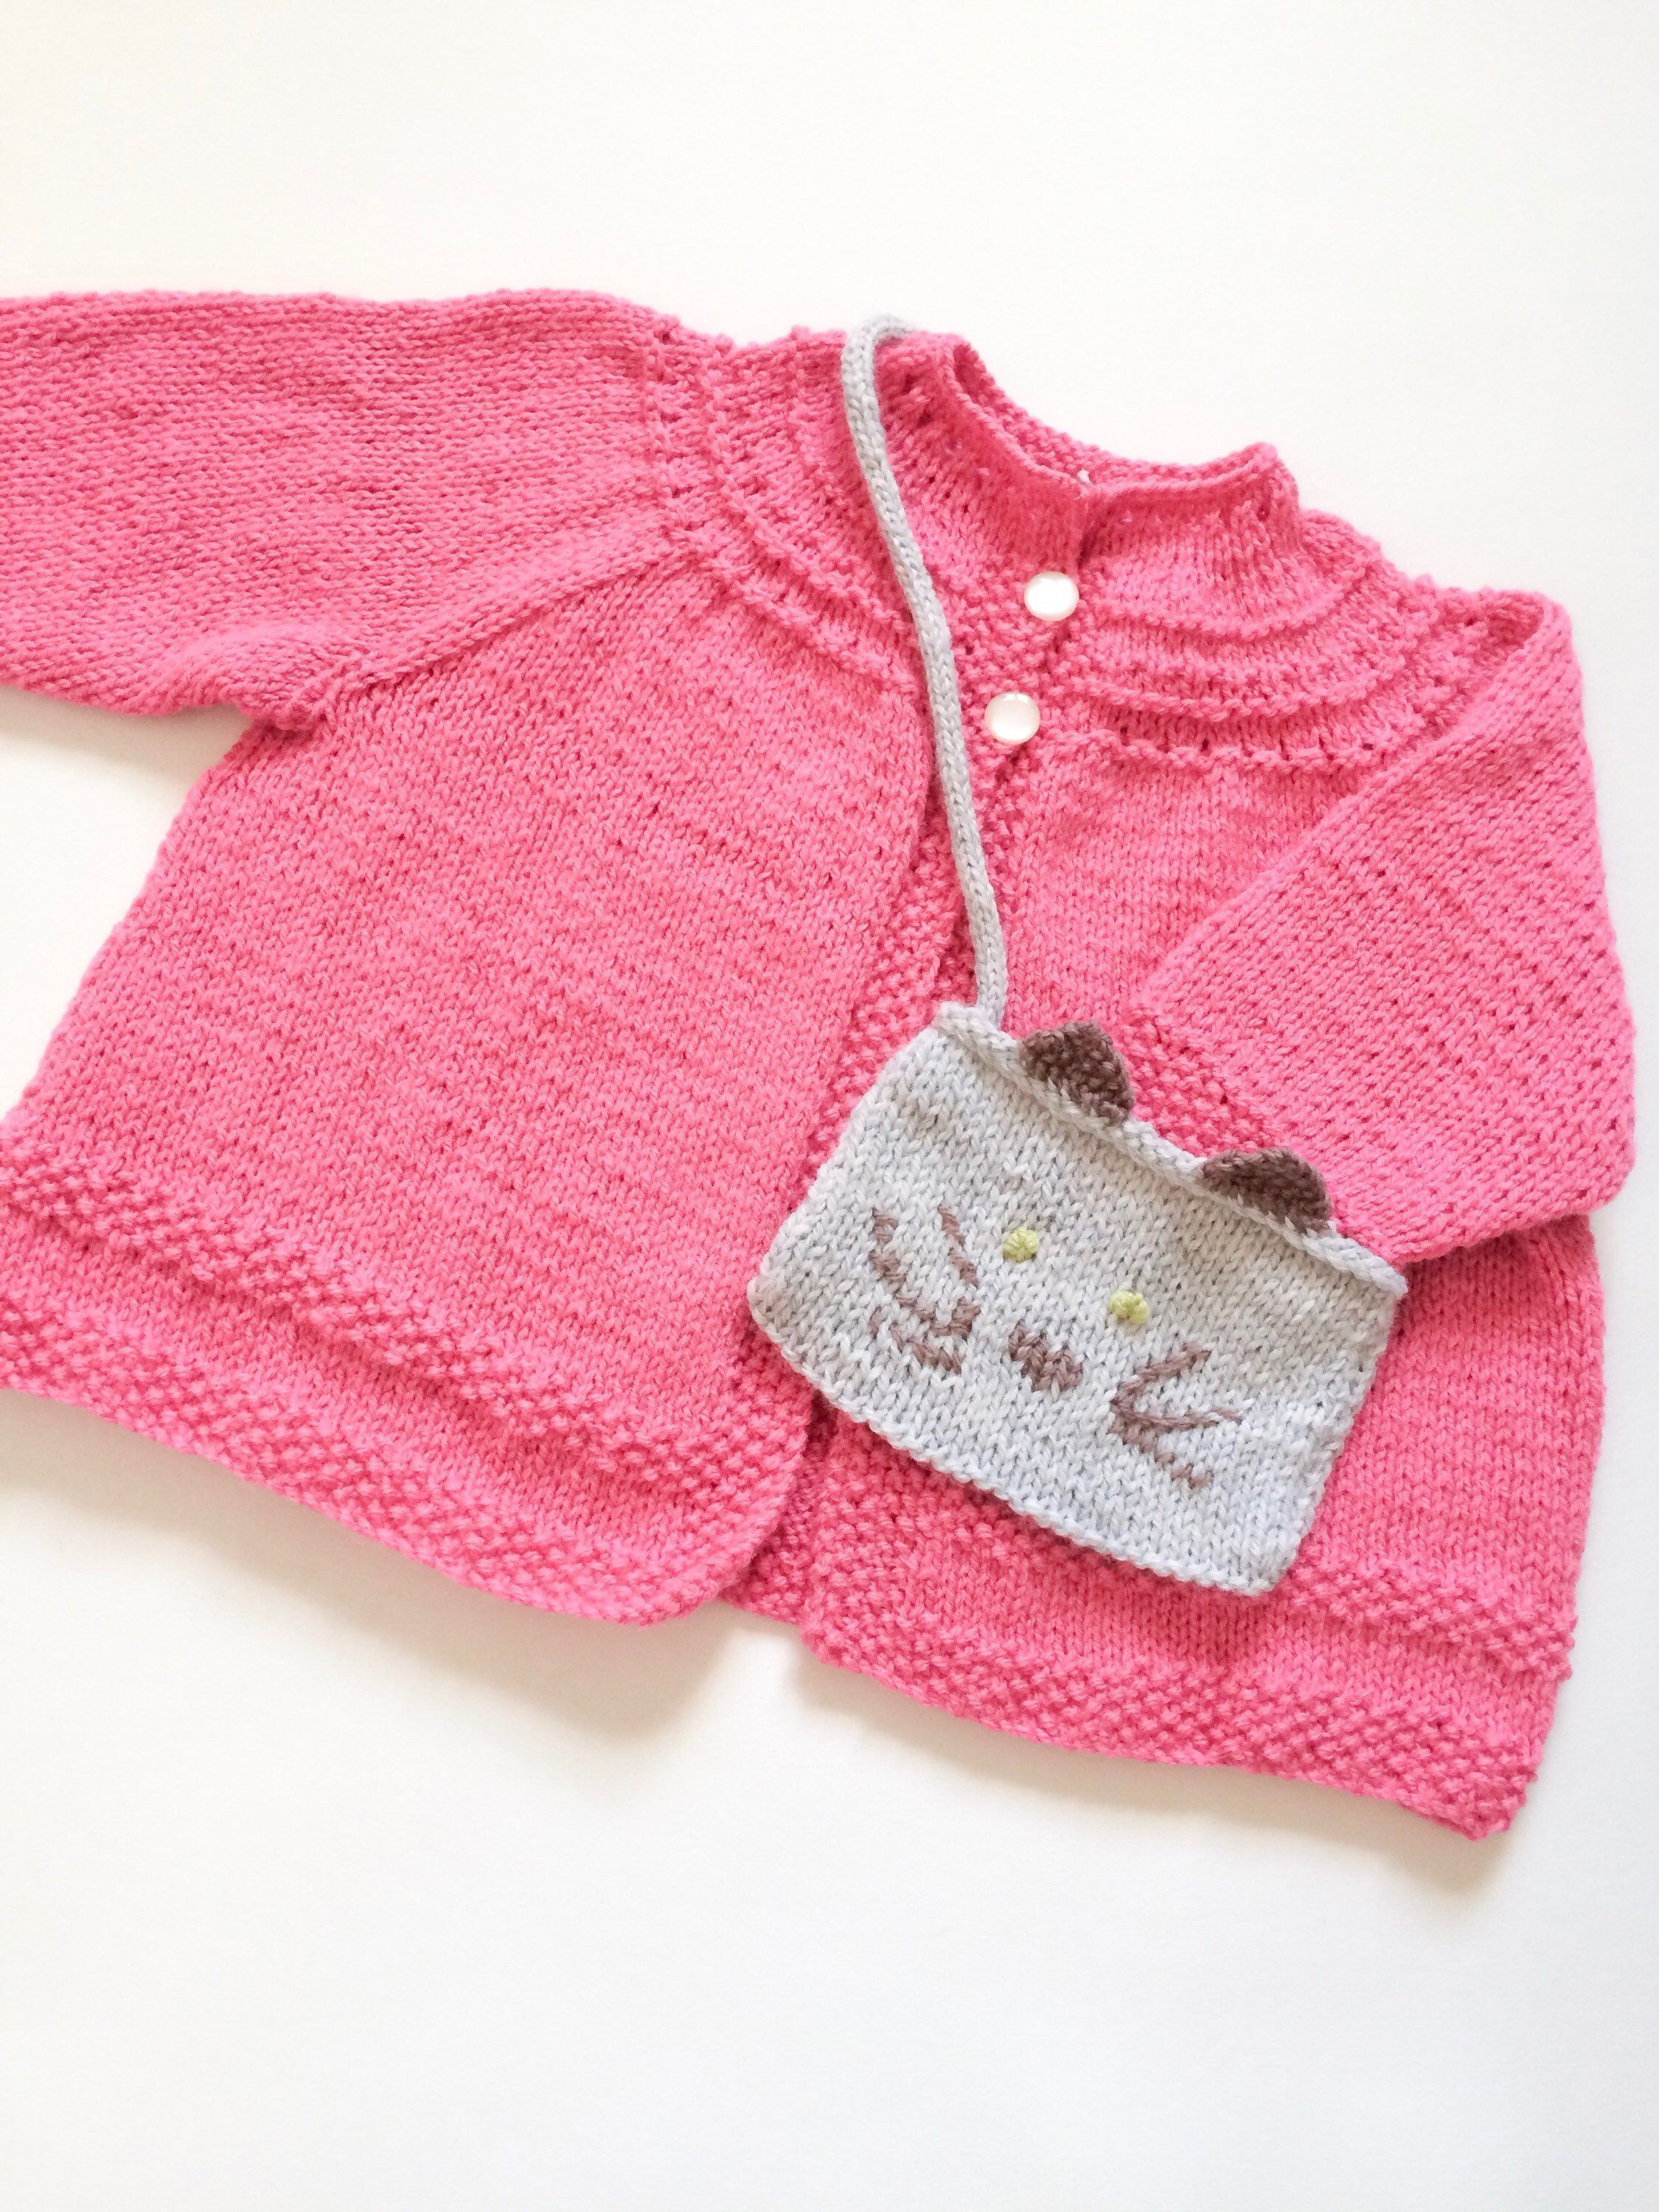 7a0833c5c Pink knitted cardigan